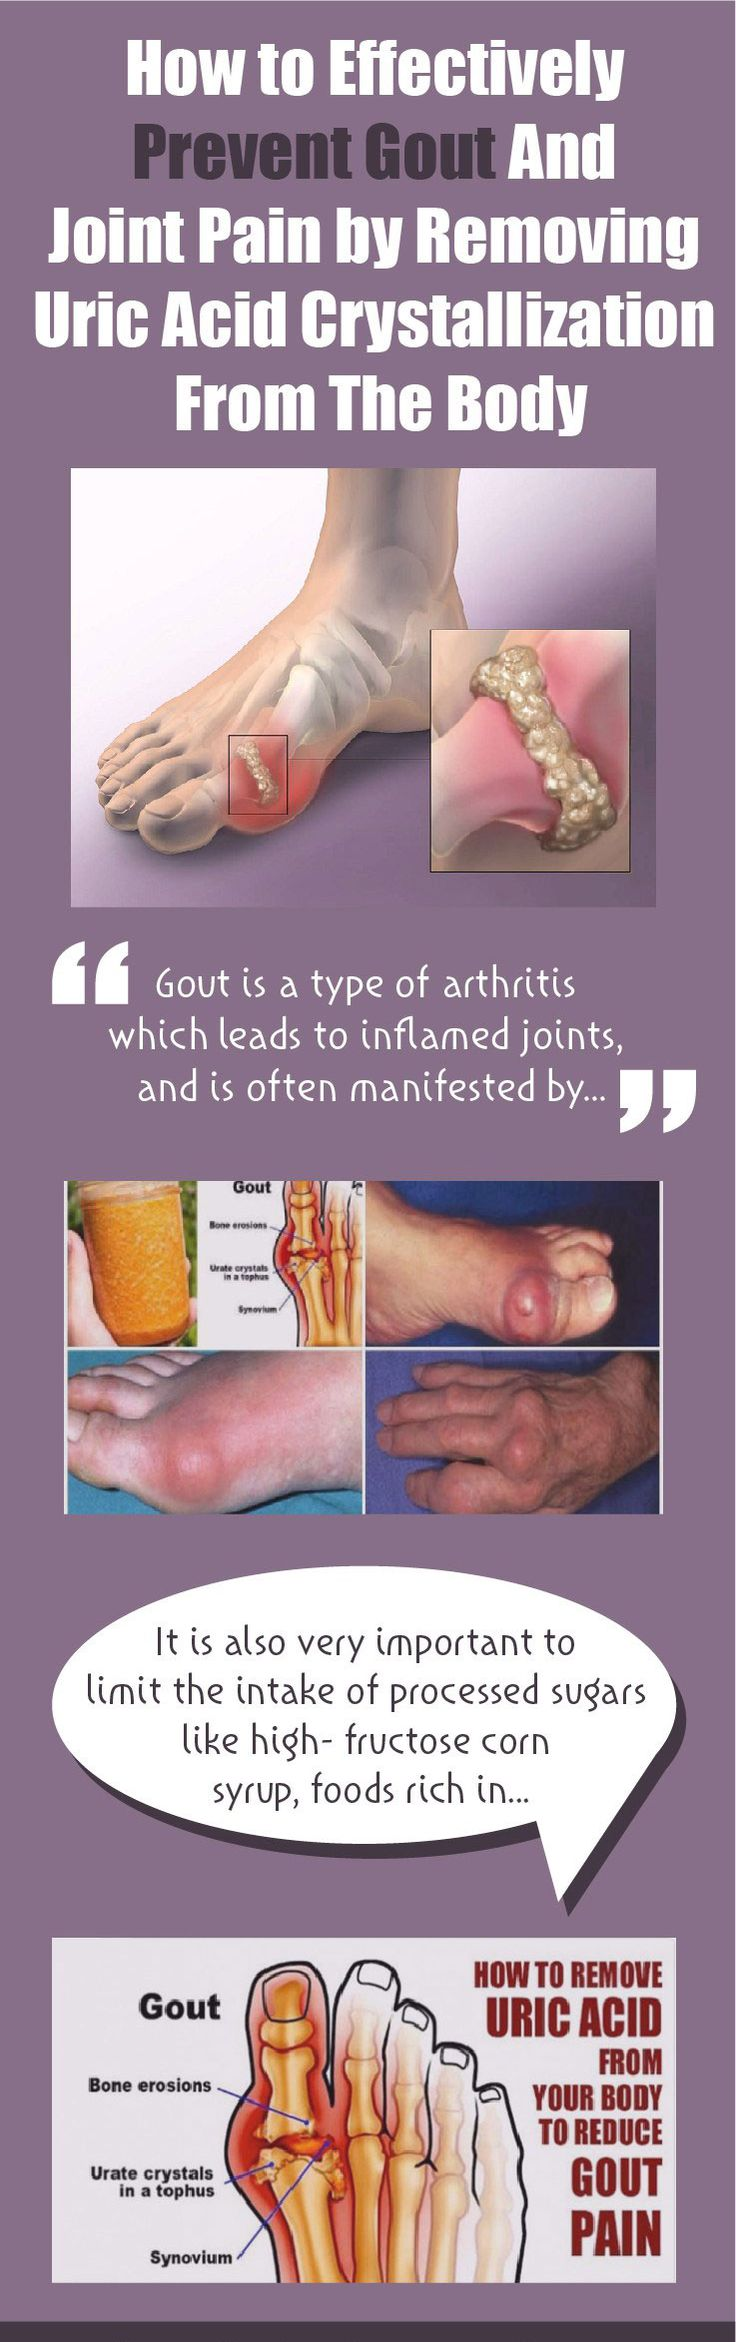 Gout is a type of arthritis which leads to inflamed joints, and is often manifested by severe pain, stiffness, and swellings. Its root cause is the excessive amounts of uric acid in the body, which accumulates and forms hard crystals in the joints. It is created by decomposing purines, chemicals which naturally occur within the body and Continue Reading